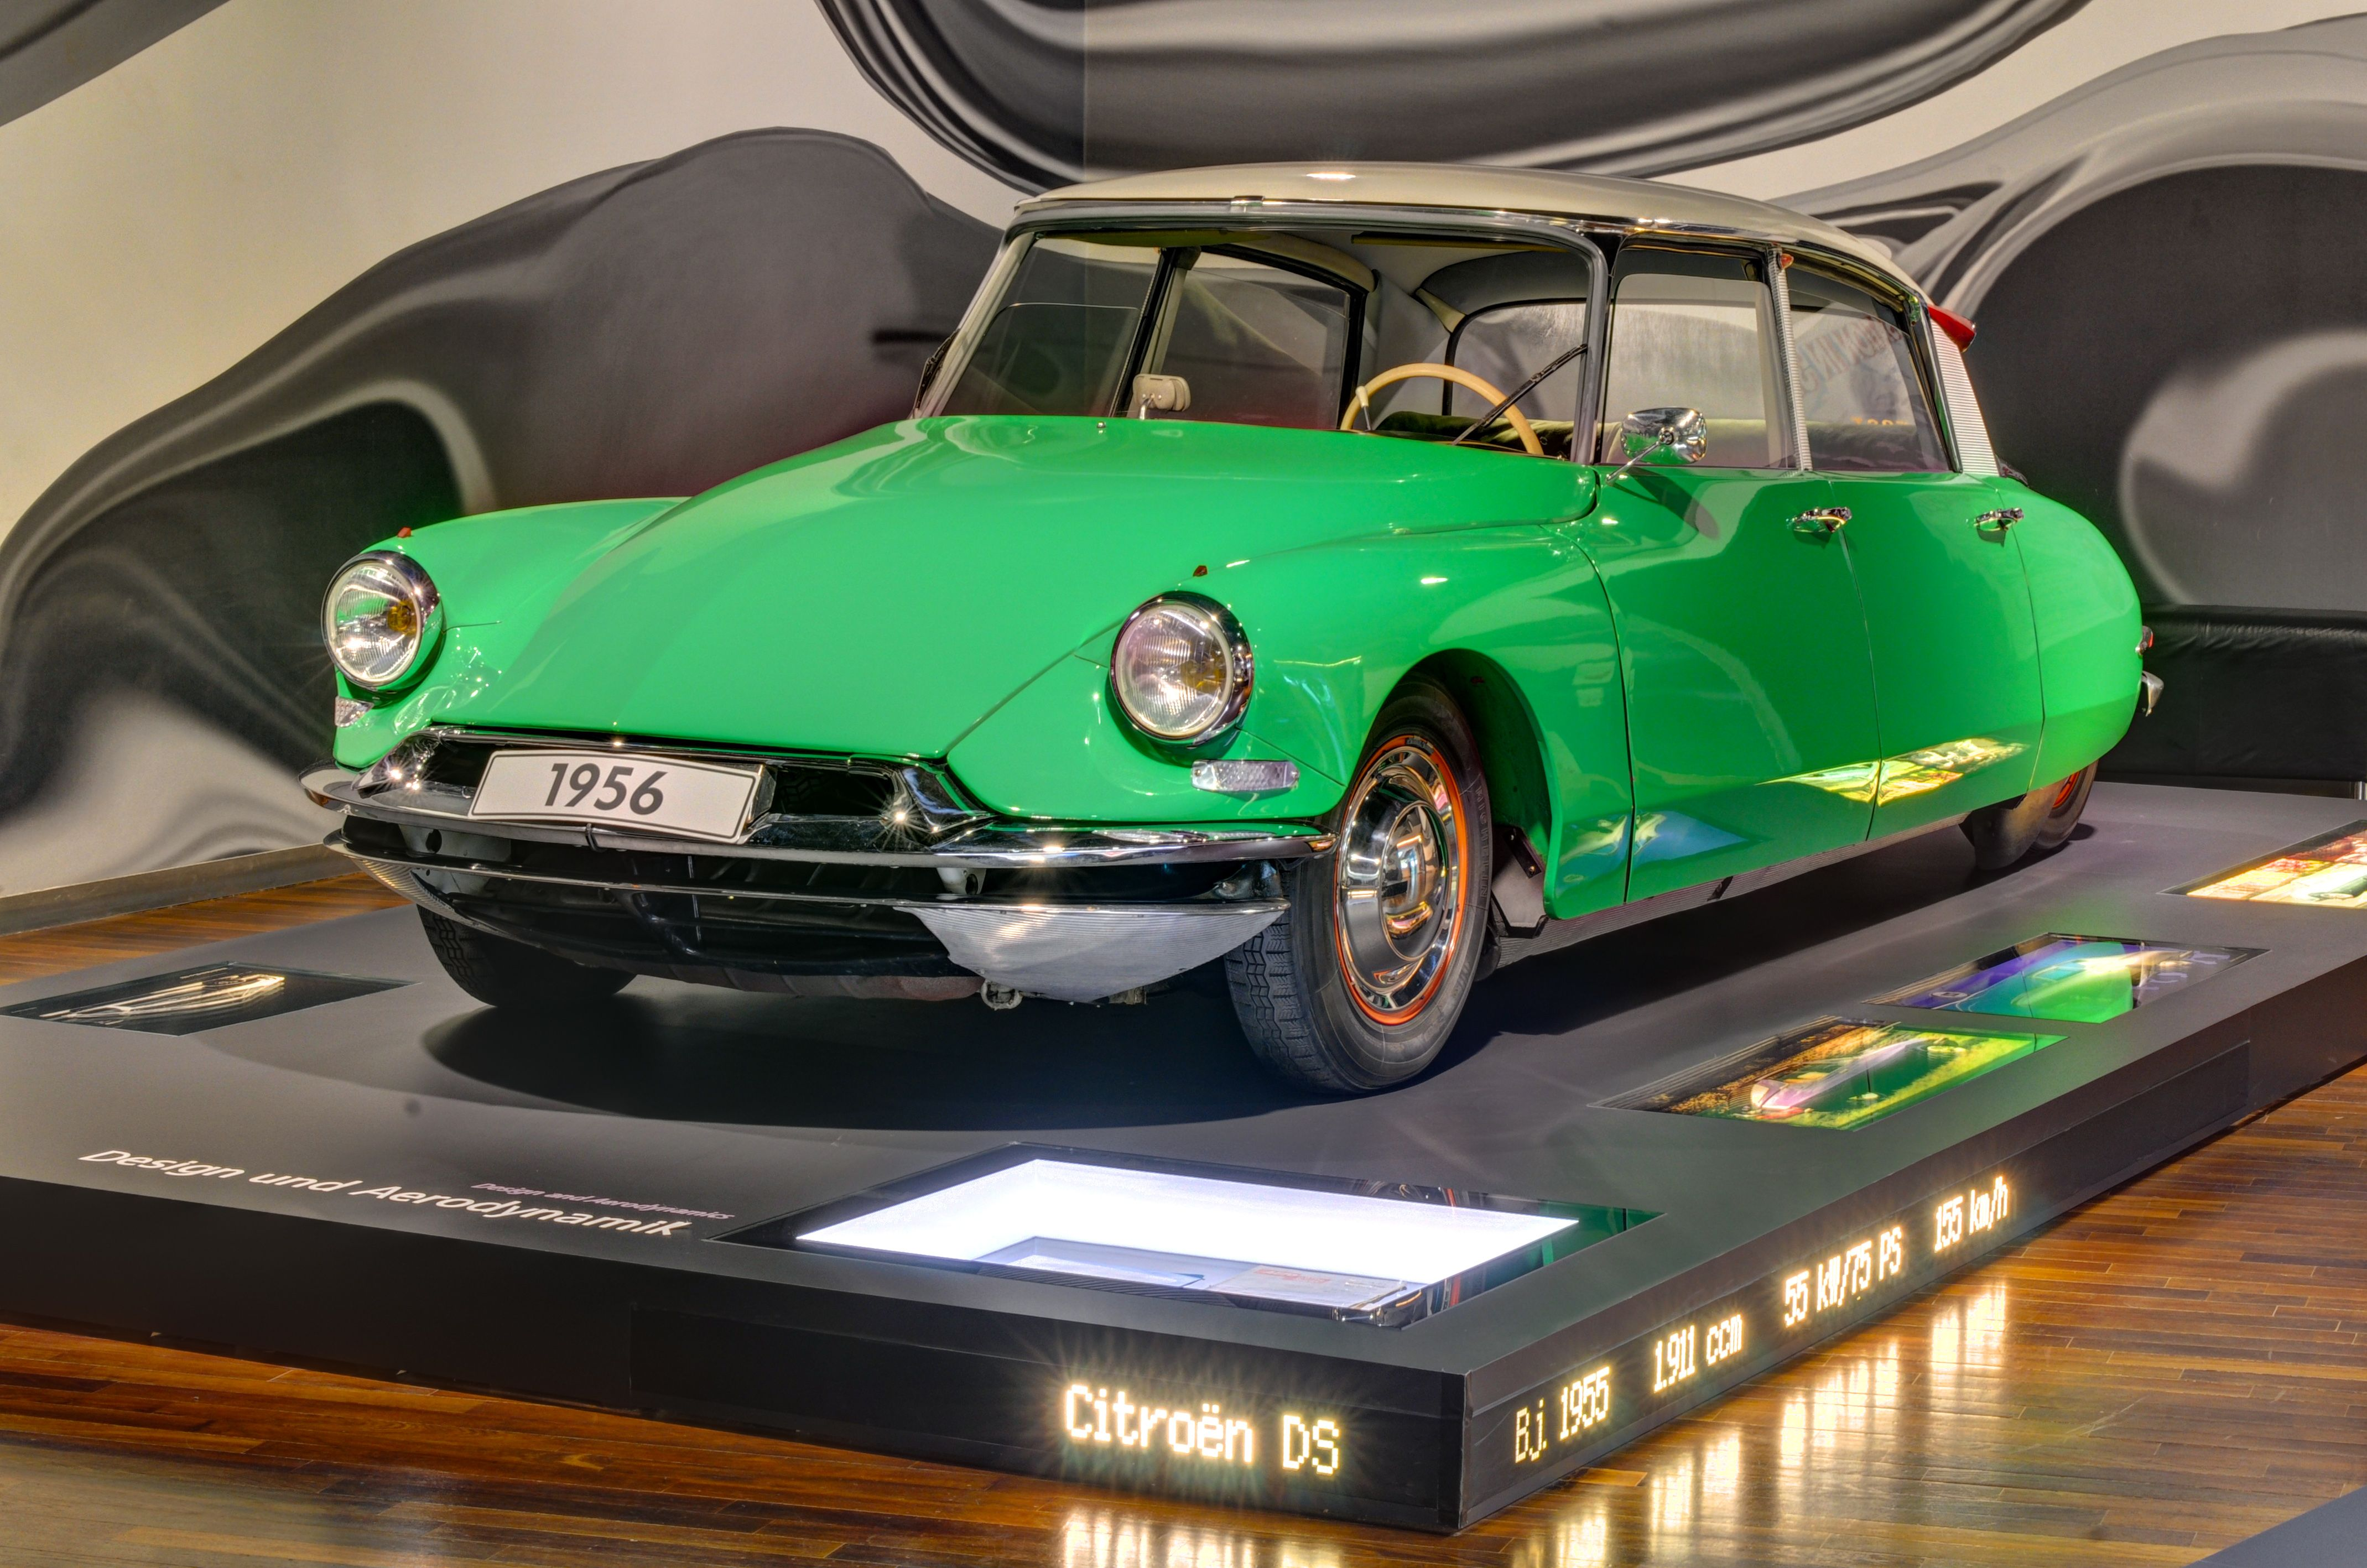 The original citroen ds 19 introduced in october 1955 this was a the original citroen ds 19 introduced in october 1955 this was a symbol for vanachro Choice Image